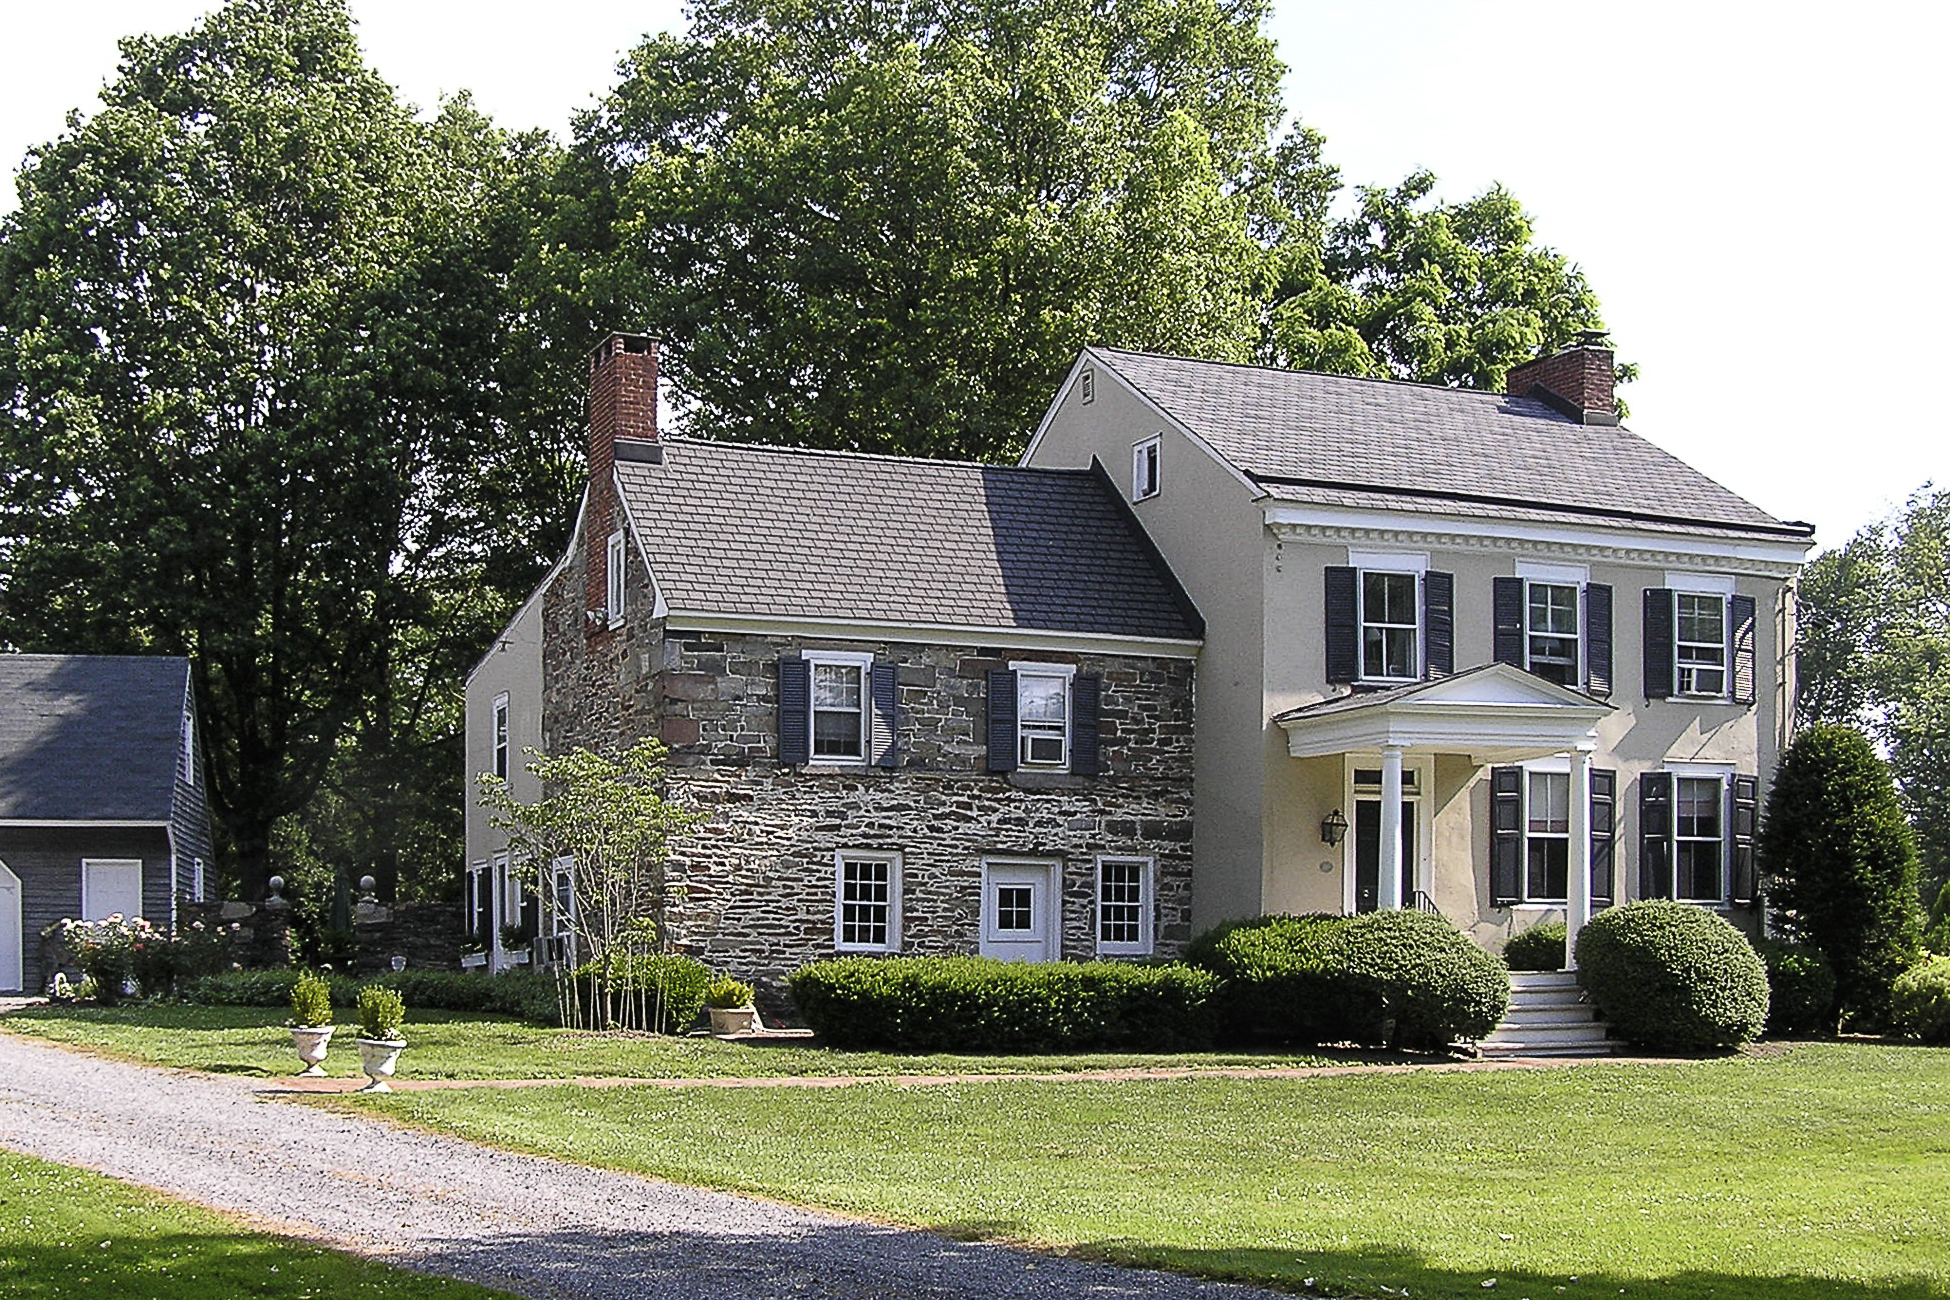 Property For Sale at Alluring Landmark Property - Lawrence Township